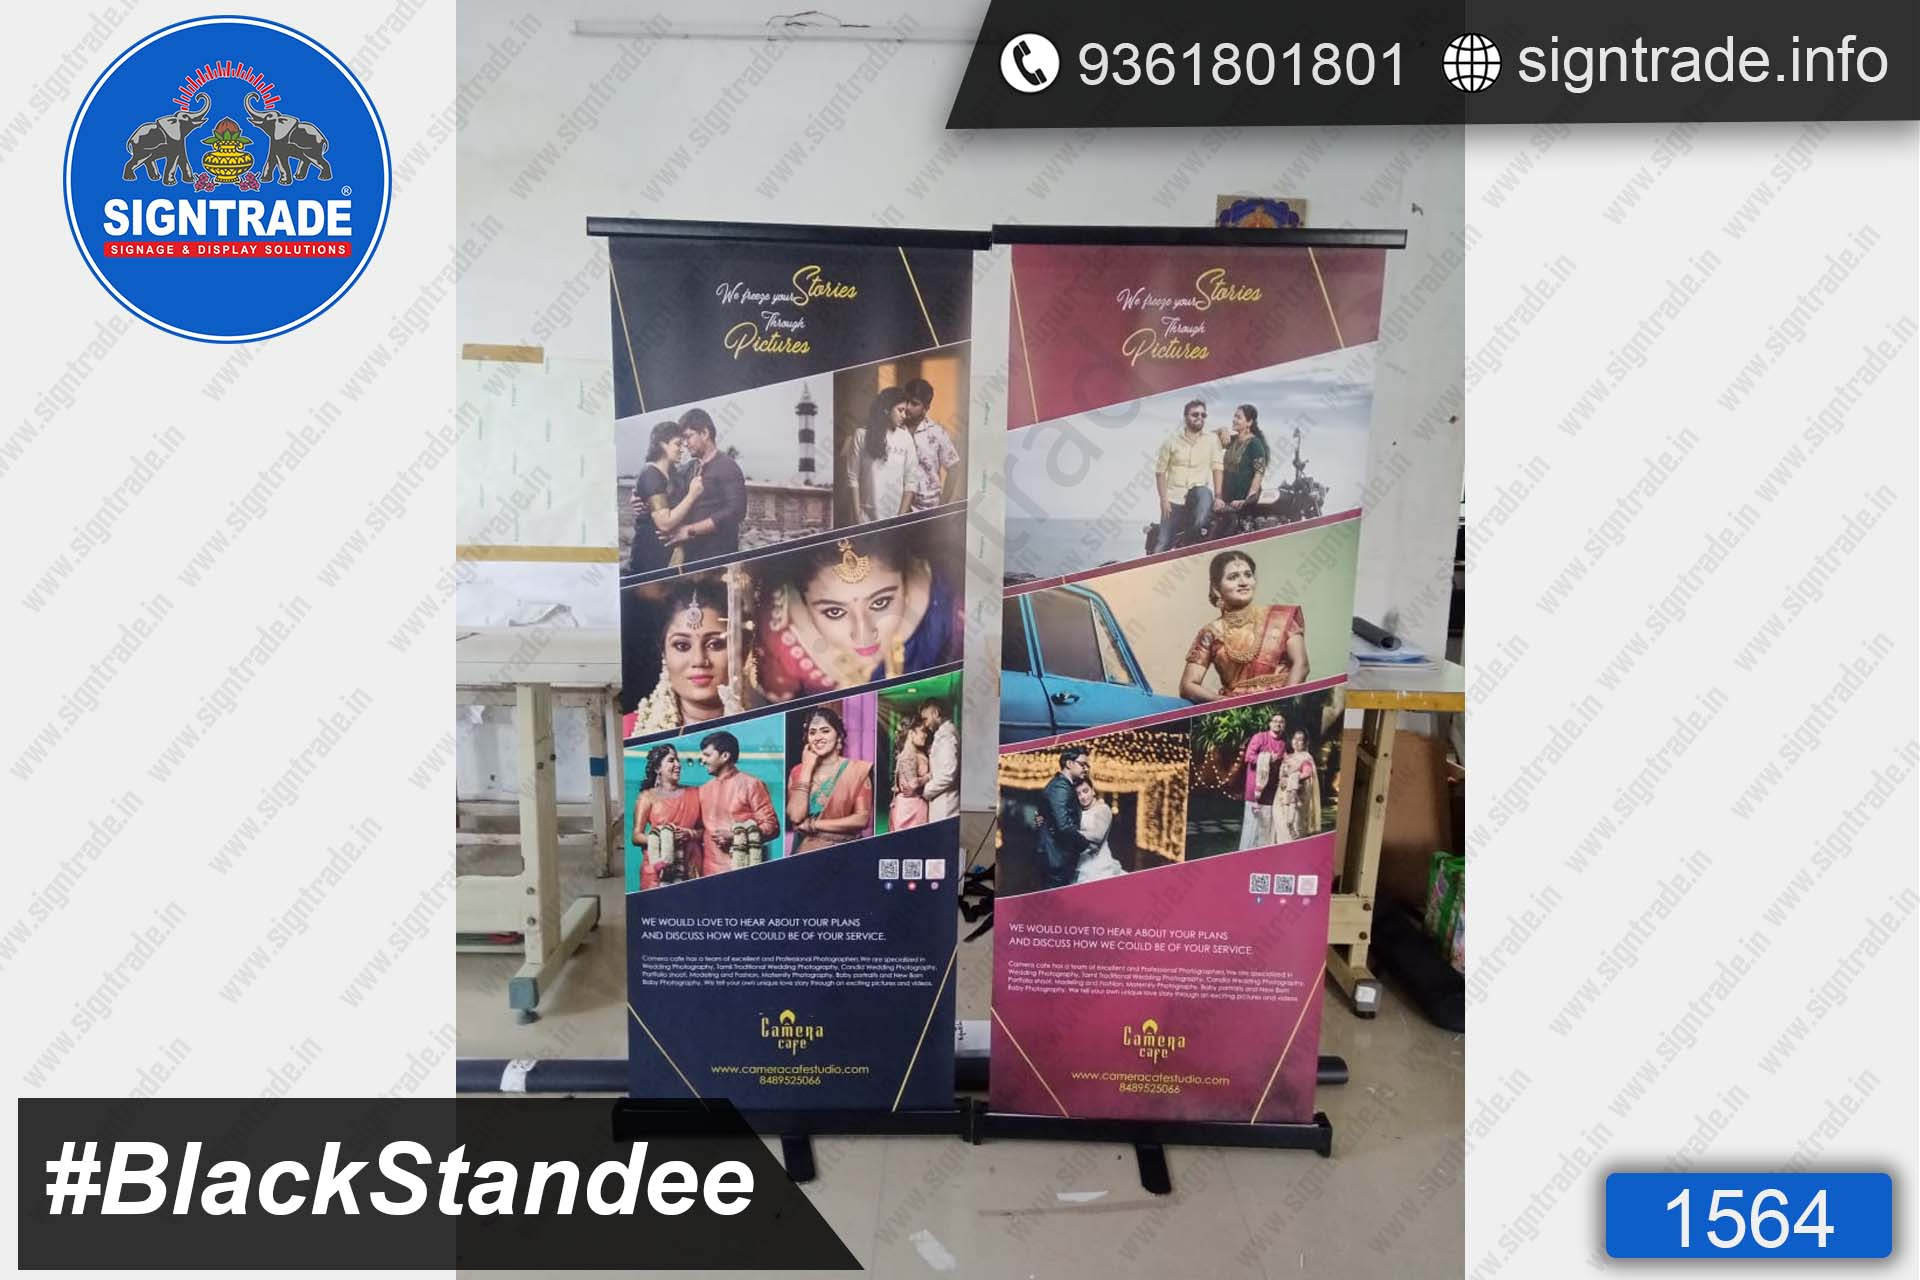 Camera Cafe Studio - SIGNTRADE - Roll Up Banner Stand Manufacturers in Chennai